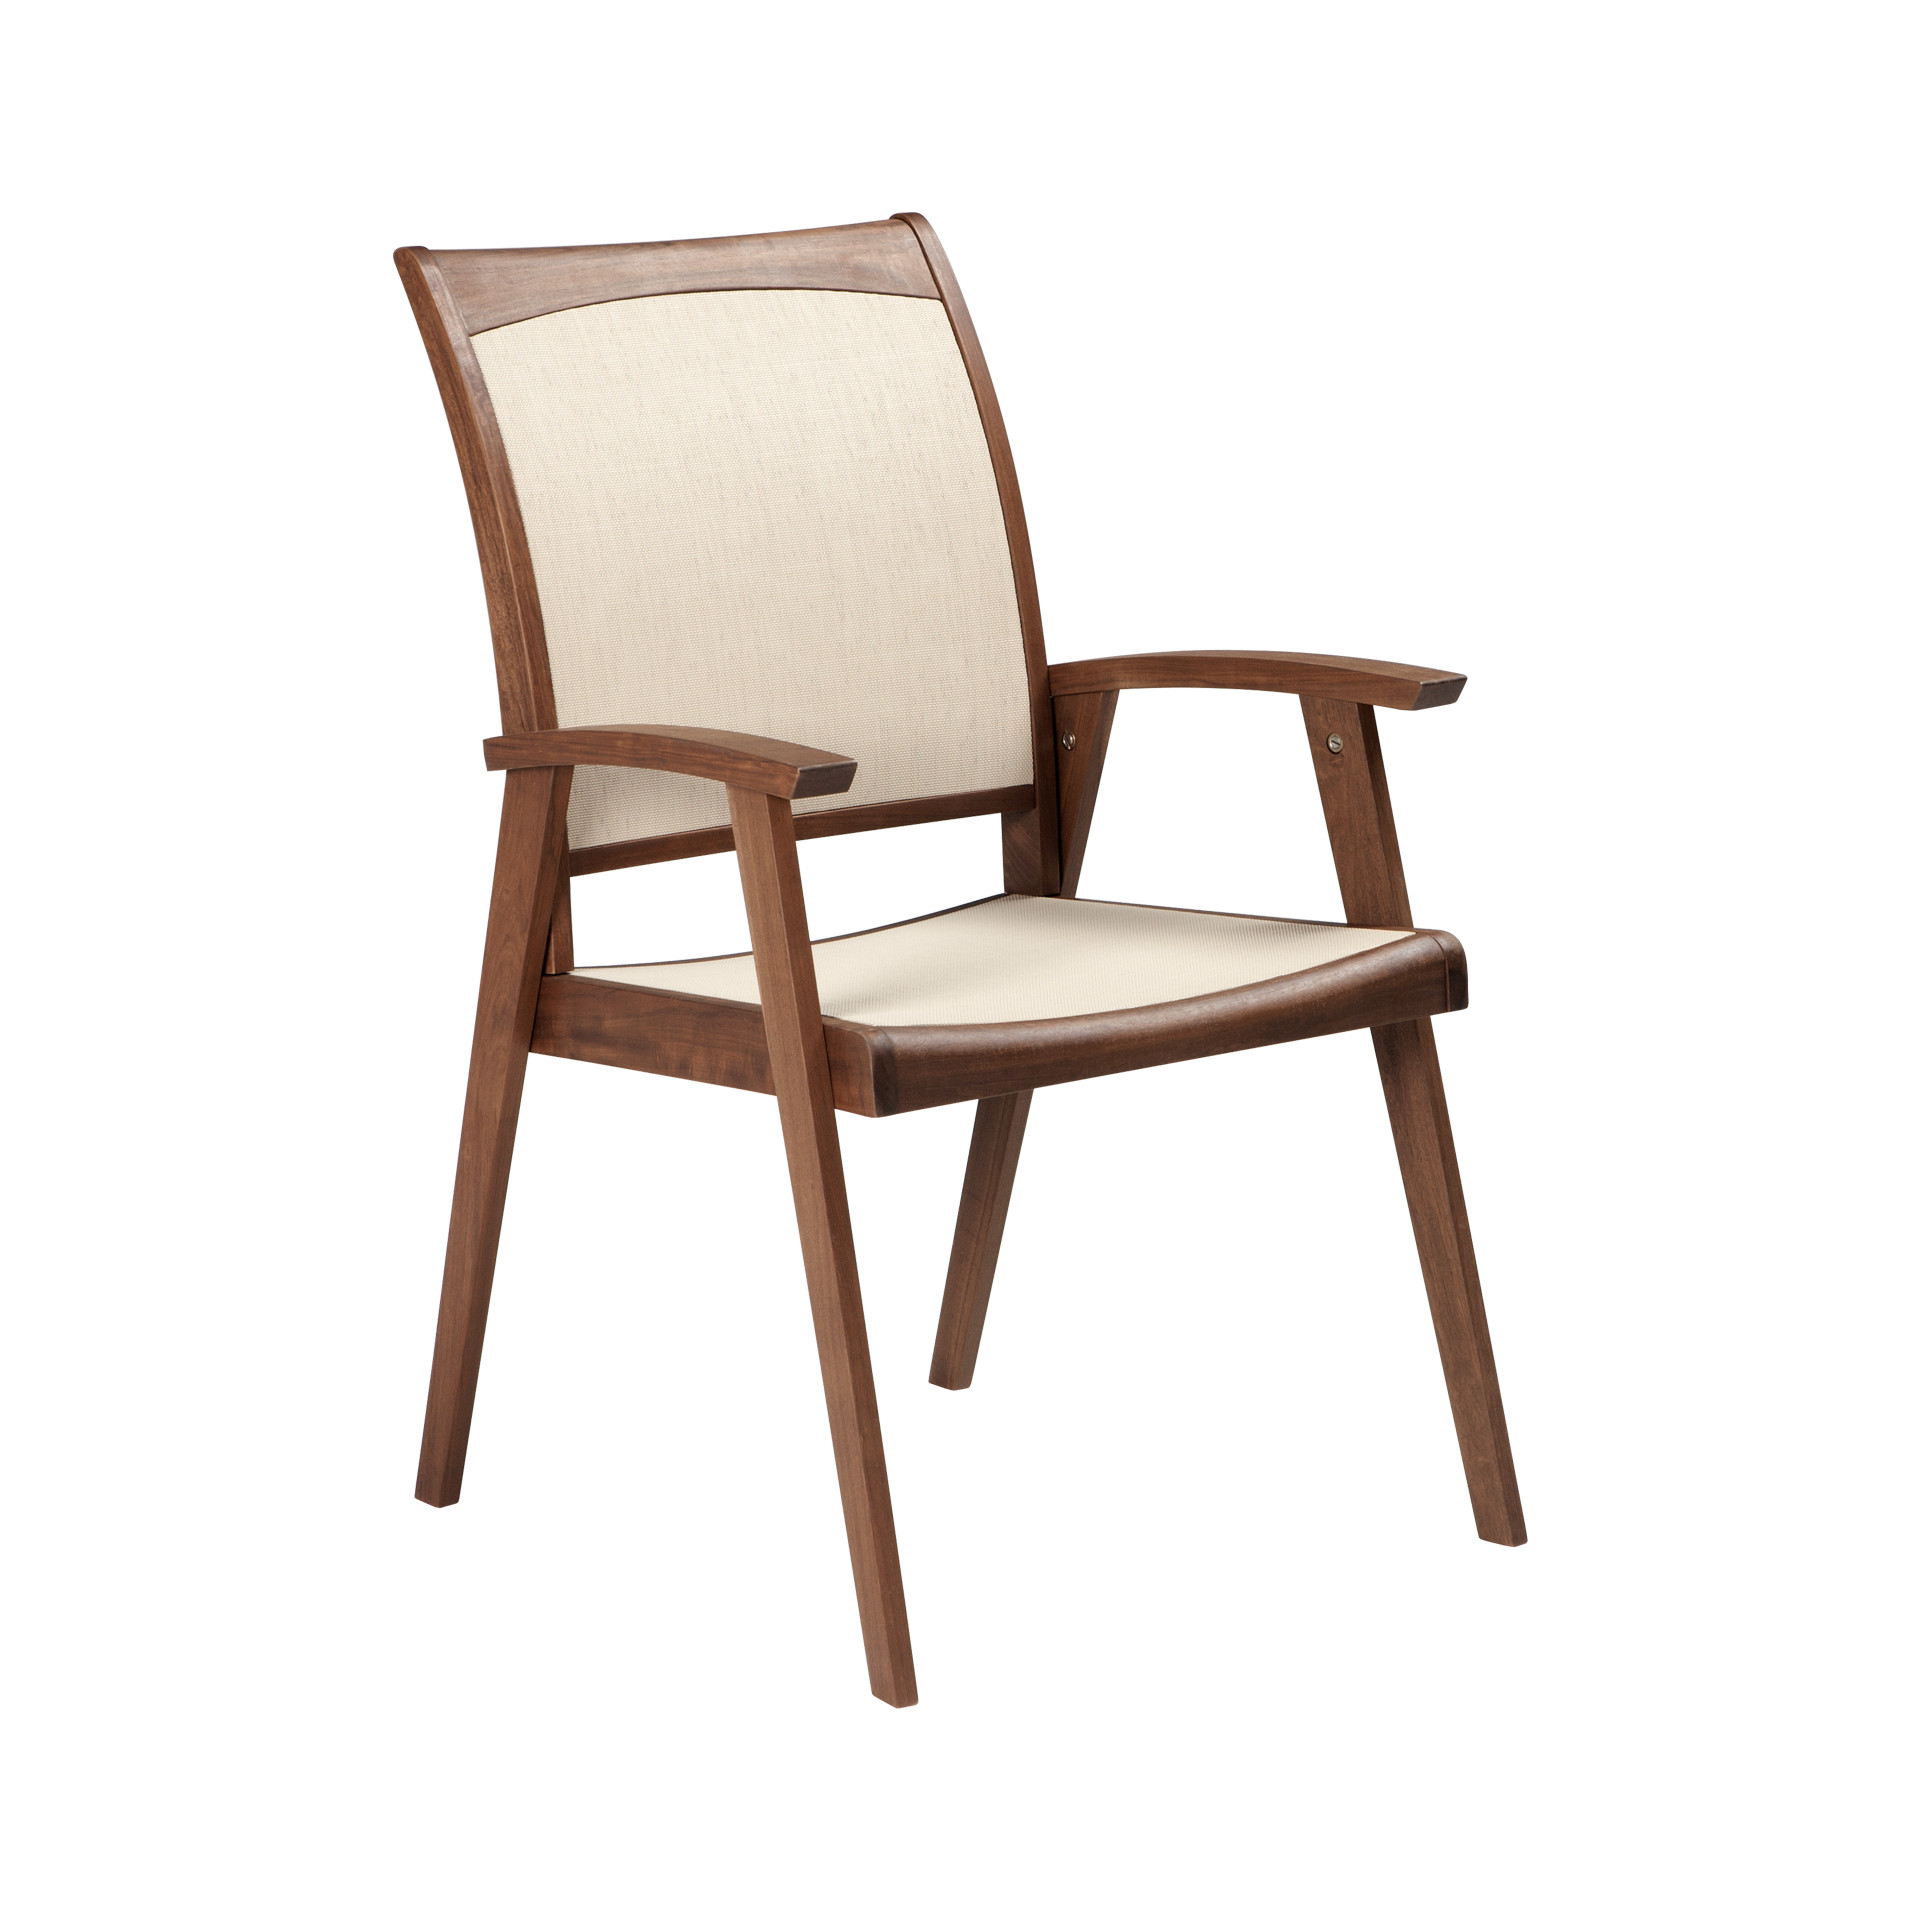 collections furniture outdoor leisure by wood patio pin jensen luxury